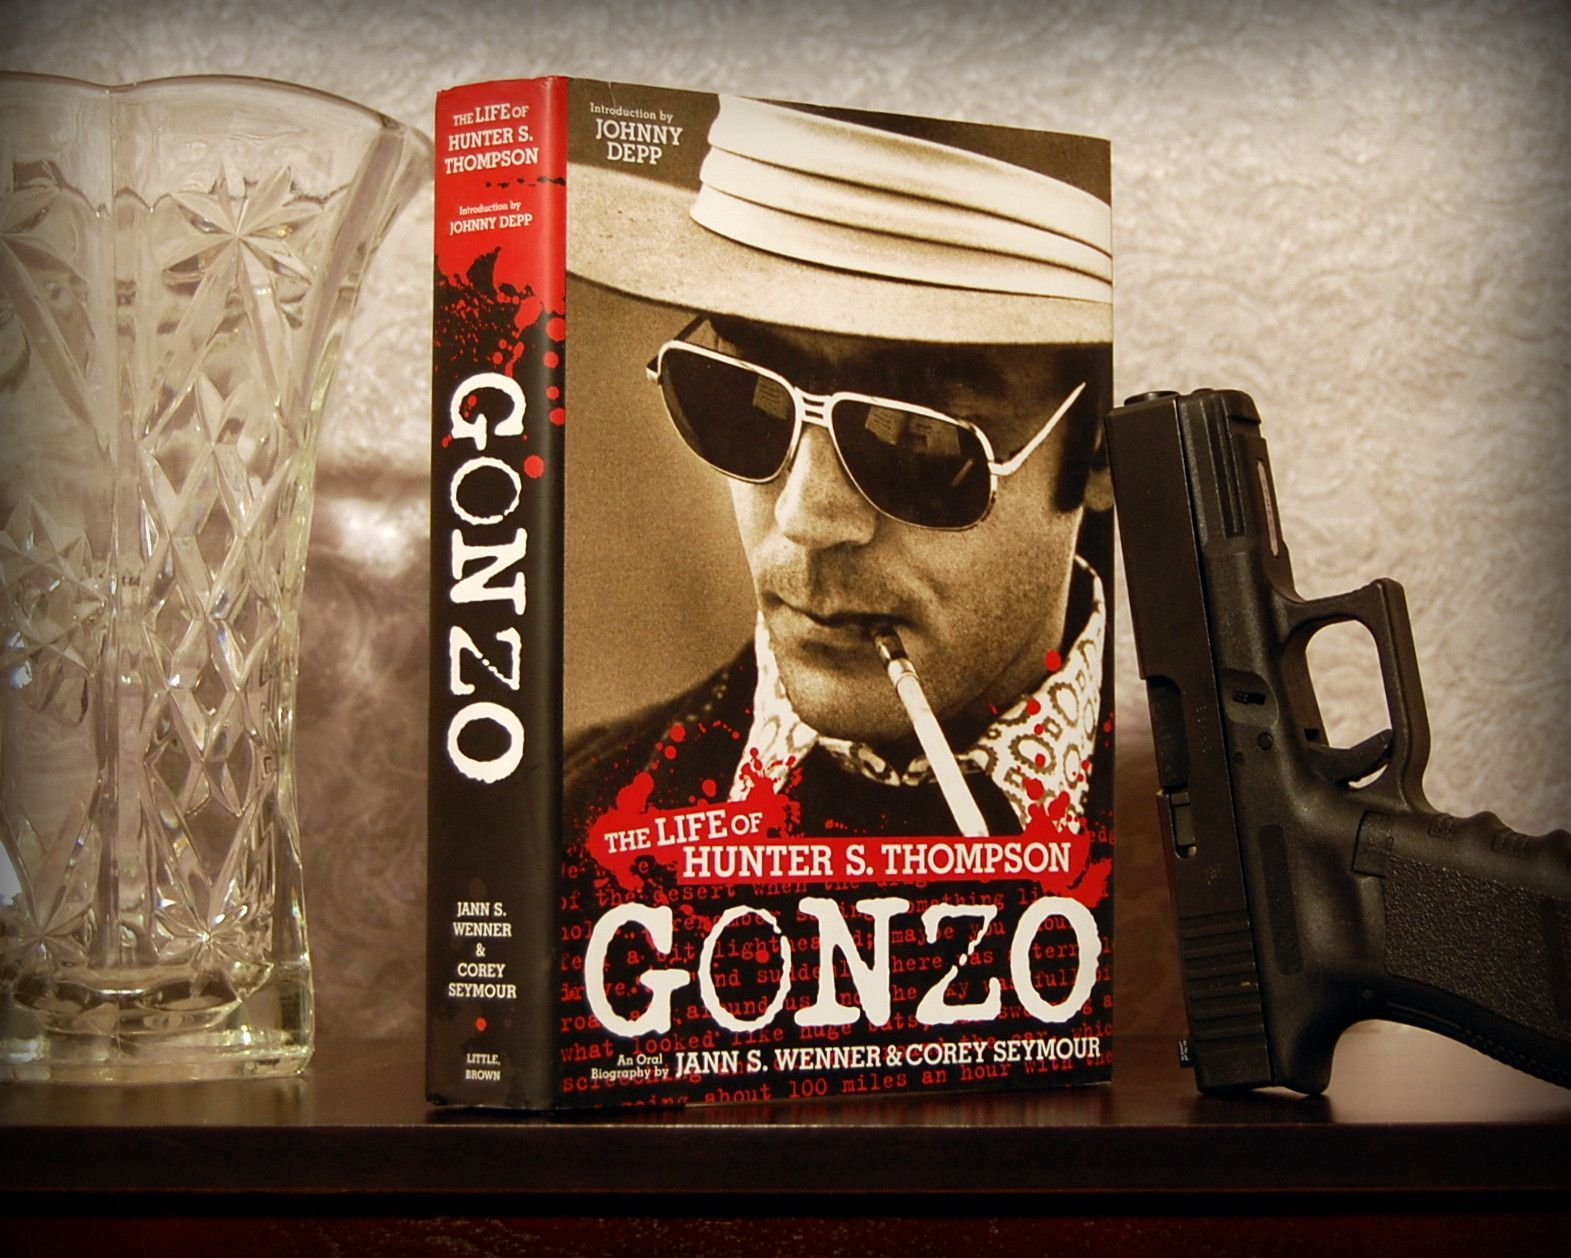 Gonzo the life of hunter s thompson wenner seymour